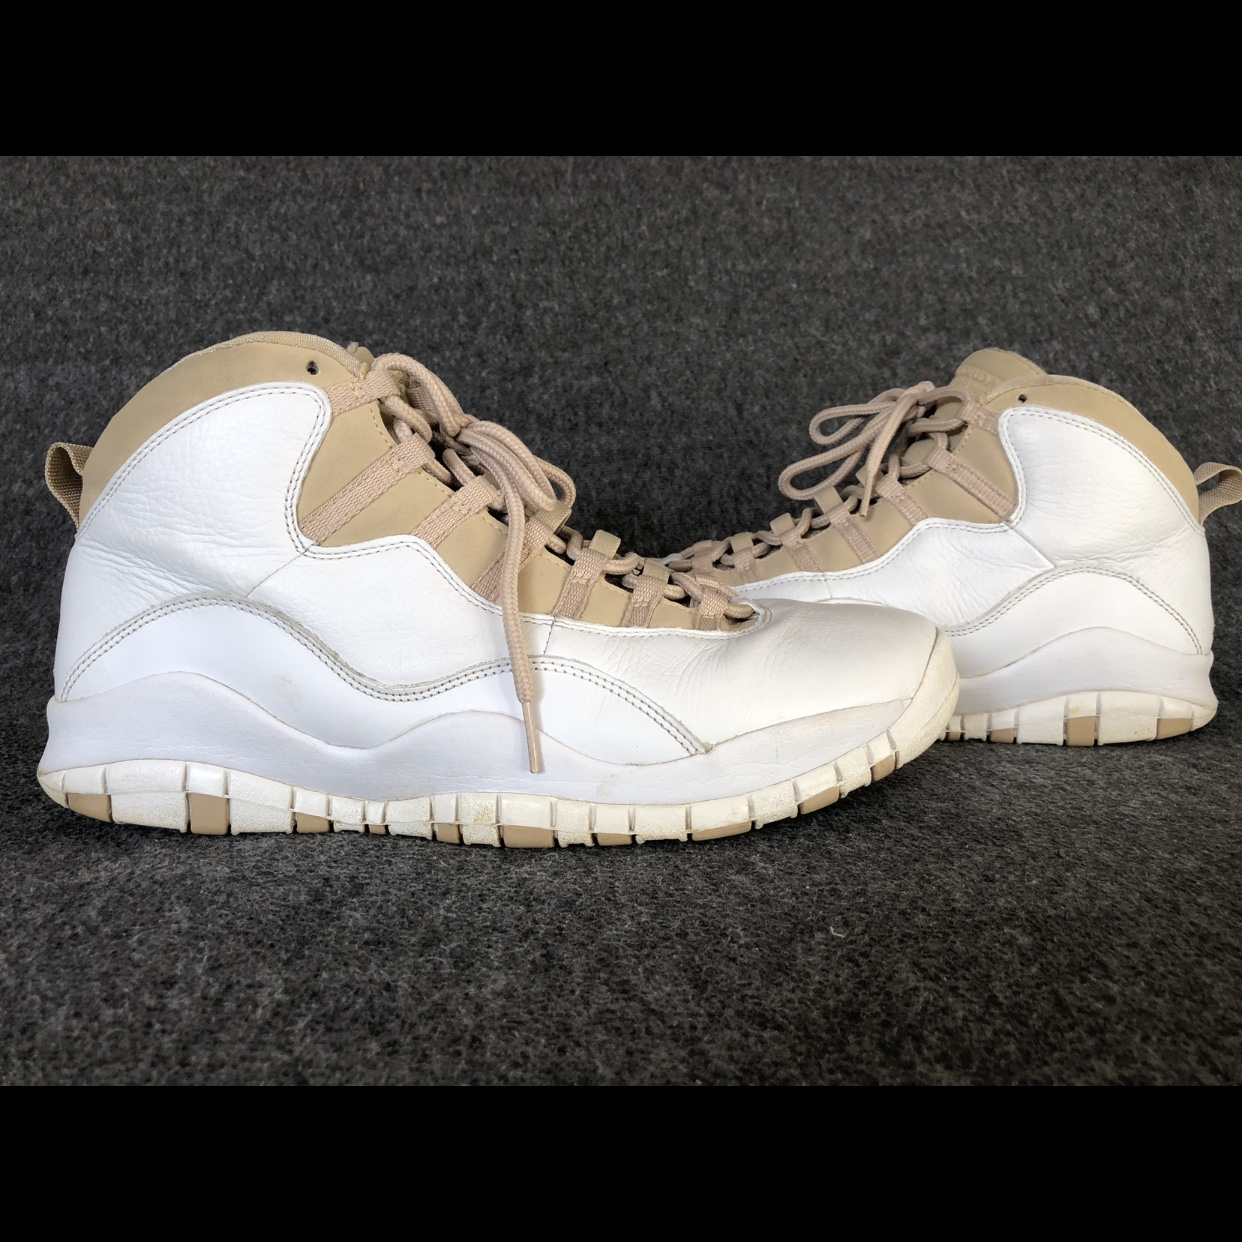 save off 7c716 5509b Jordan 10 Linen. Not many people are familiar with... - Depop